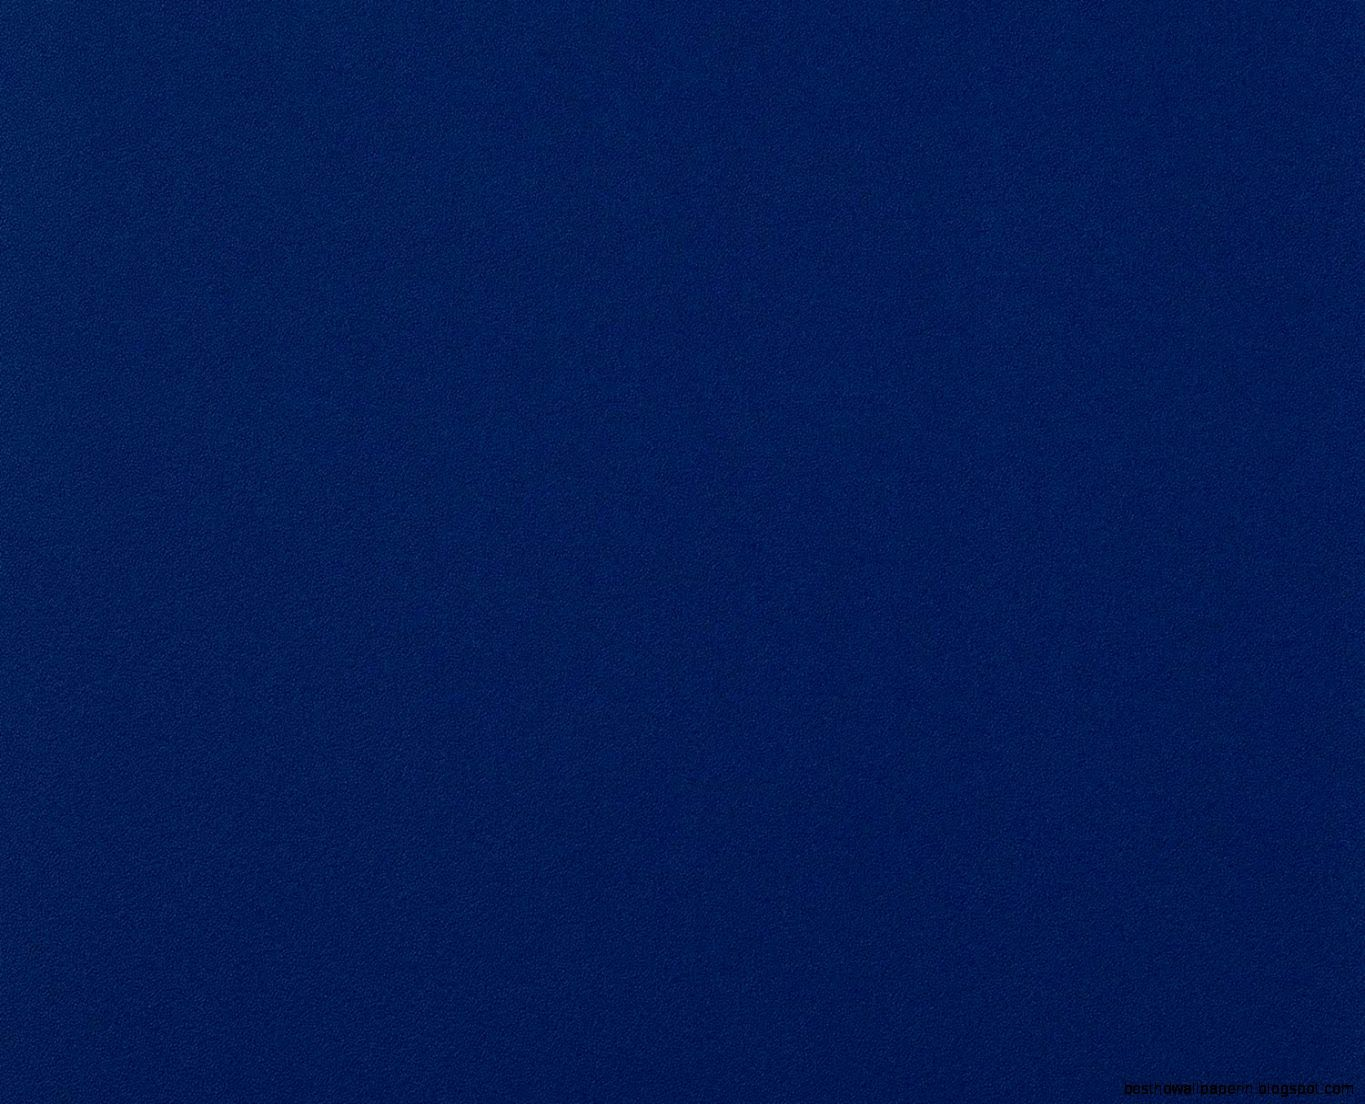 Navy blue screen hd gallery for Navy blue wallpaper for walls